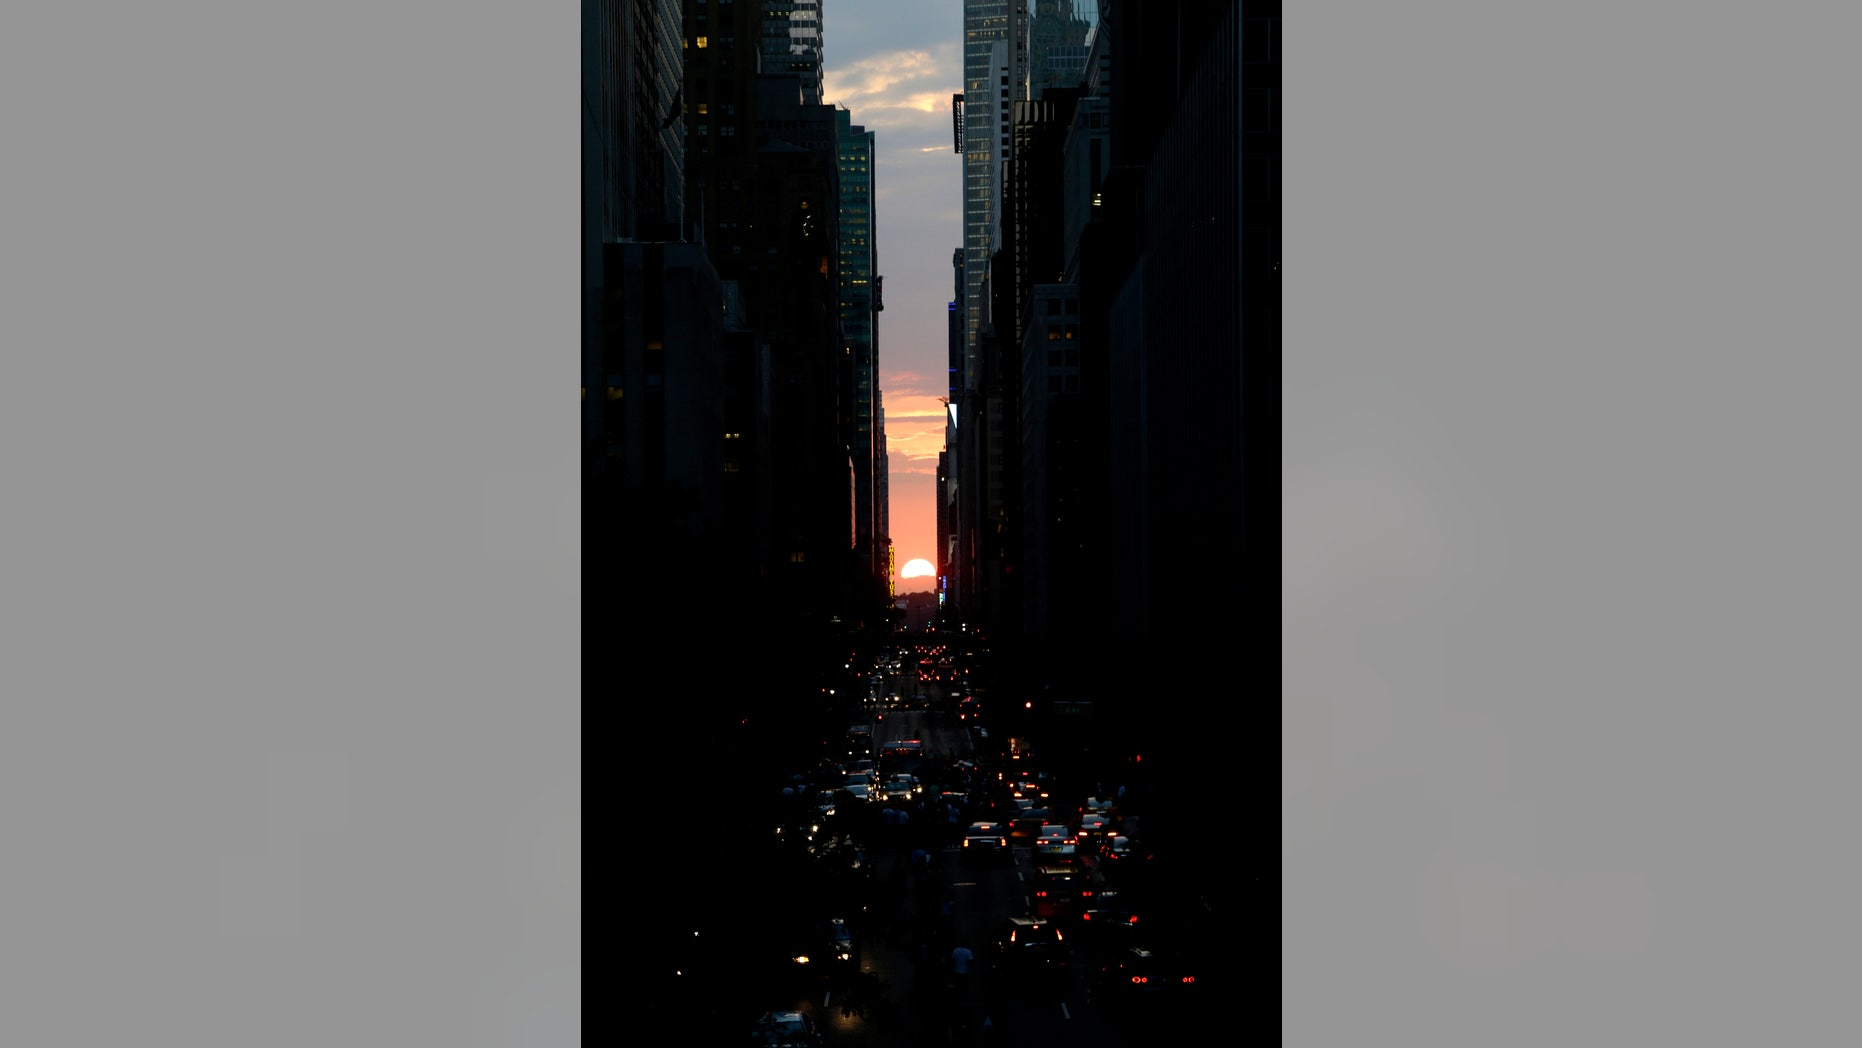 The sun sets through the middle of buildings on 42nd Street in New York's Manhattan borough, during a phenomenon known as Manhattanhenge, Wednesday, July 11, 2012. Manhattanhenge, sometimes referred to as the Manhattan Solstice, happens when the setting sun aligns with the east-to-west streets of the main street grid. The term references Stonehenge, at which the sun aligns with the stones on the solstices in England. (AP Photo/Julio Cortez)